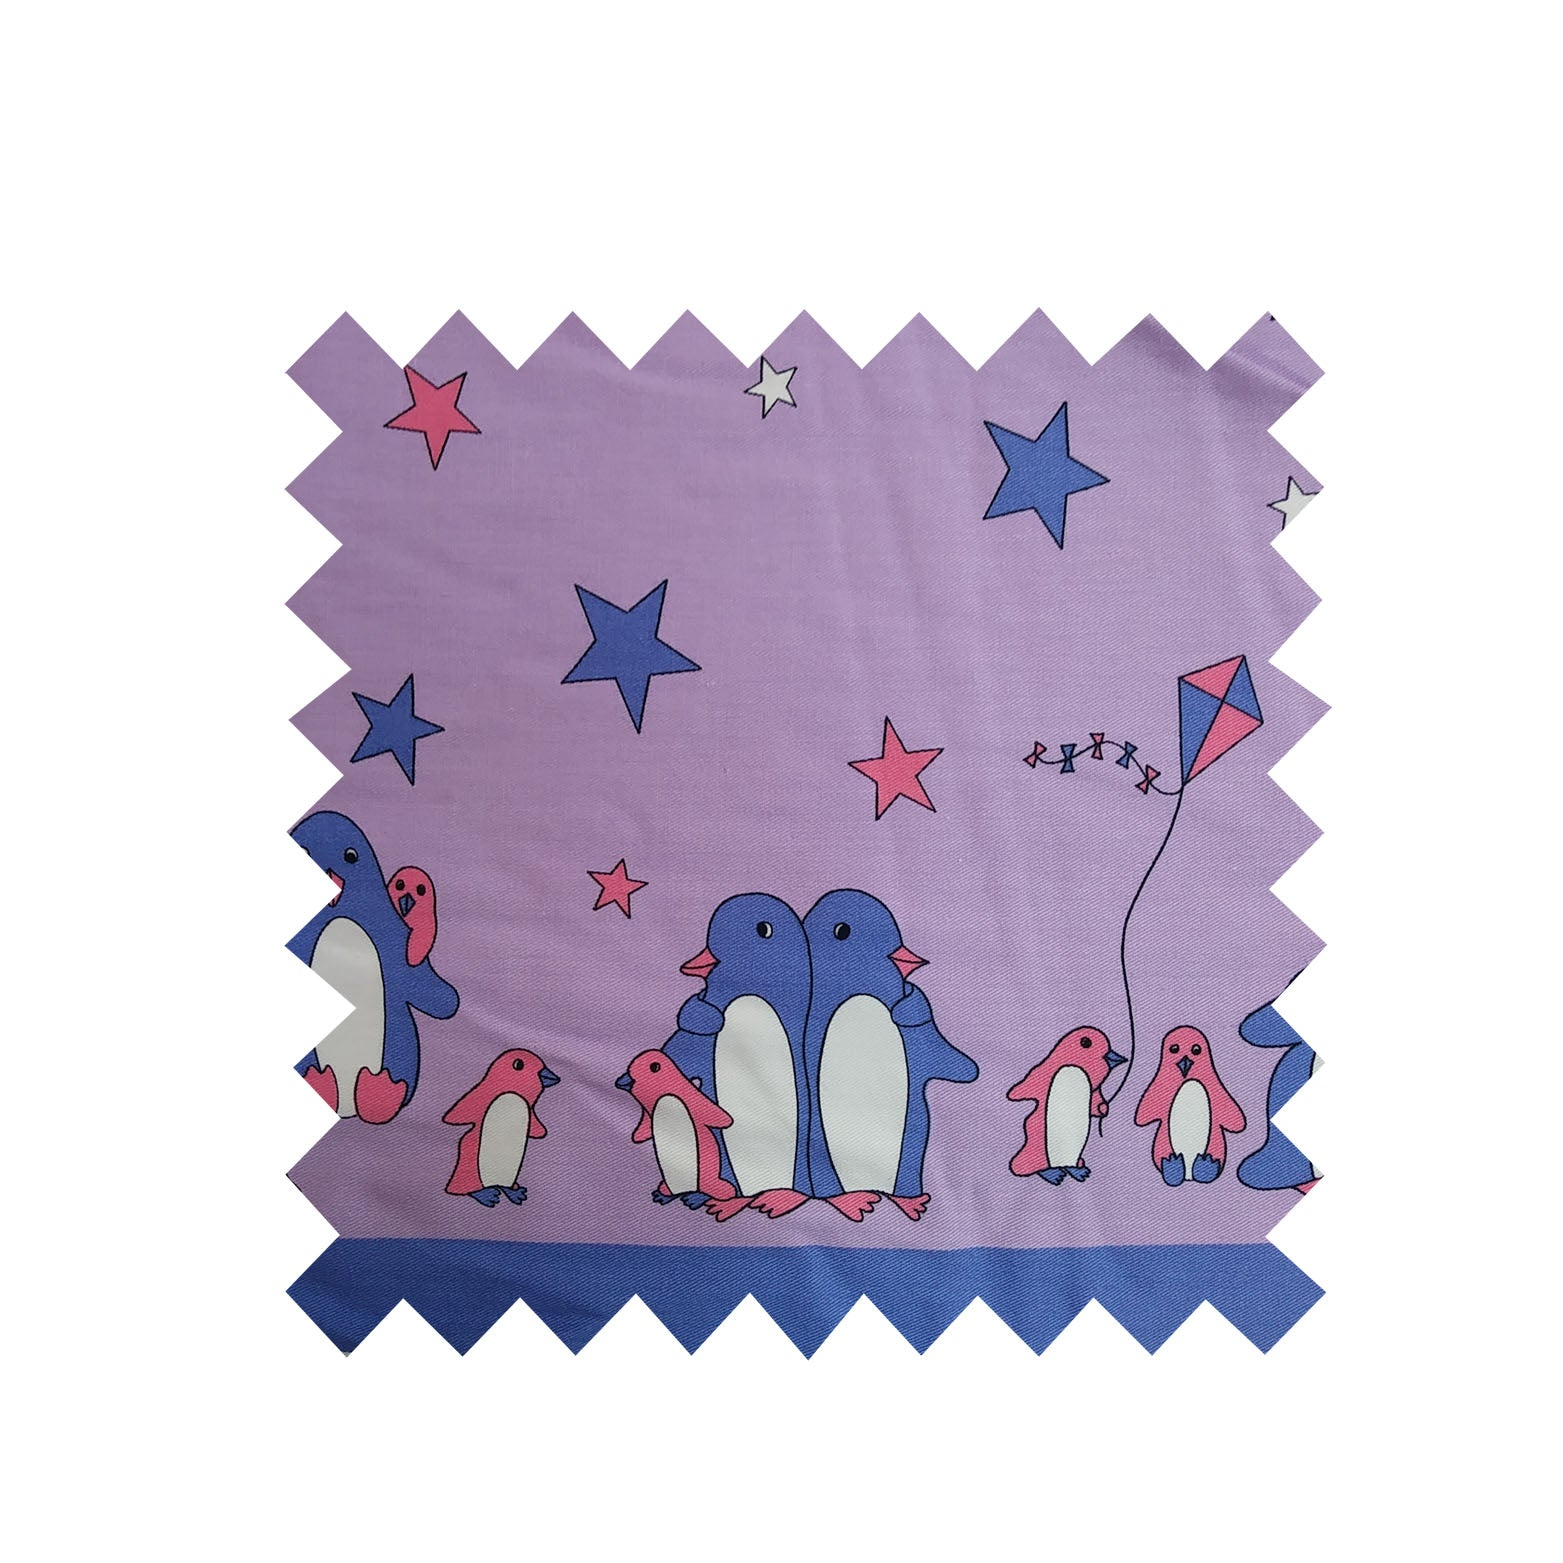 2.13m Remnant of Lilac Penguin Fabric - Cotton twill Fabric